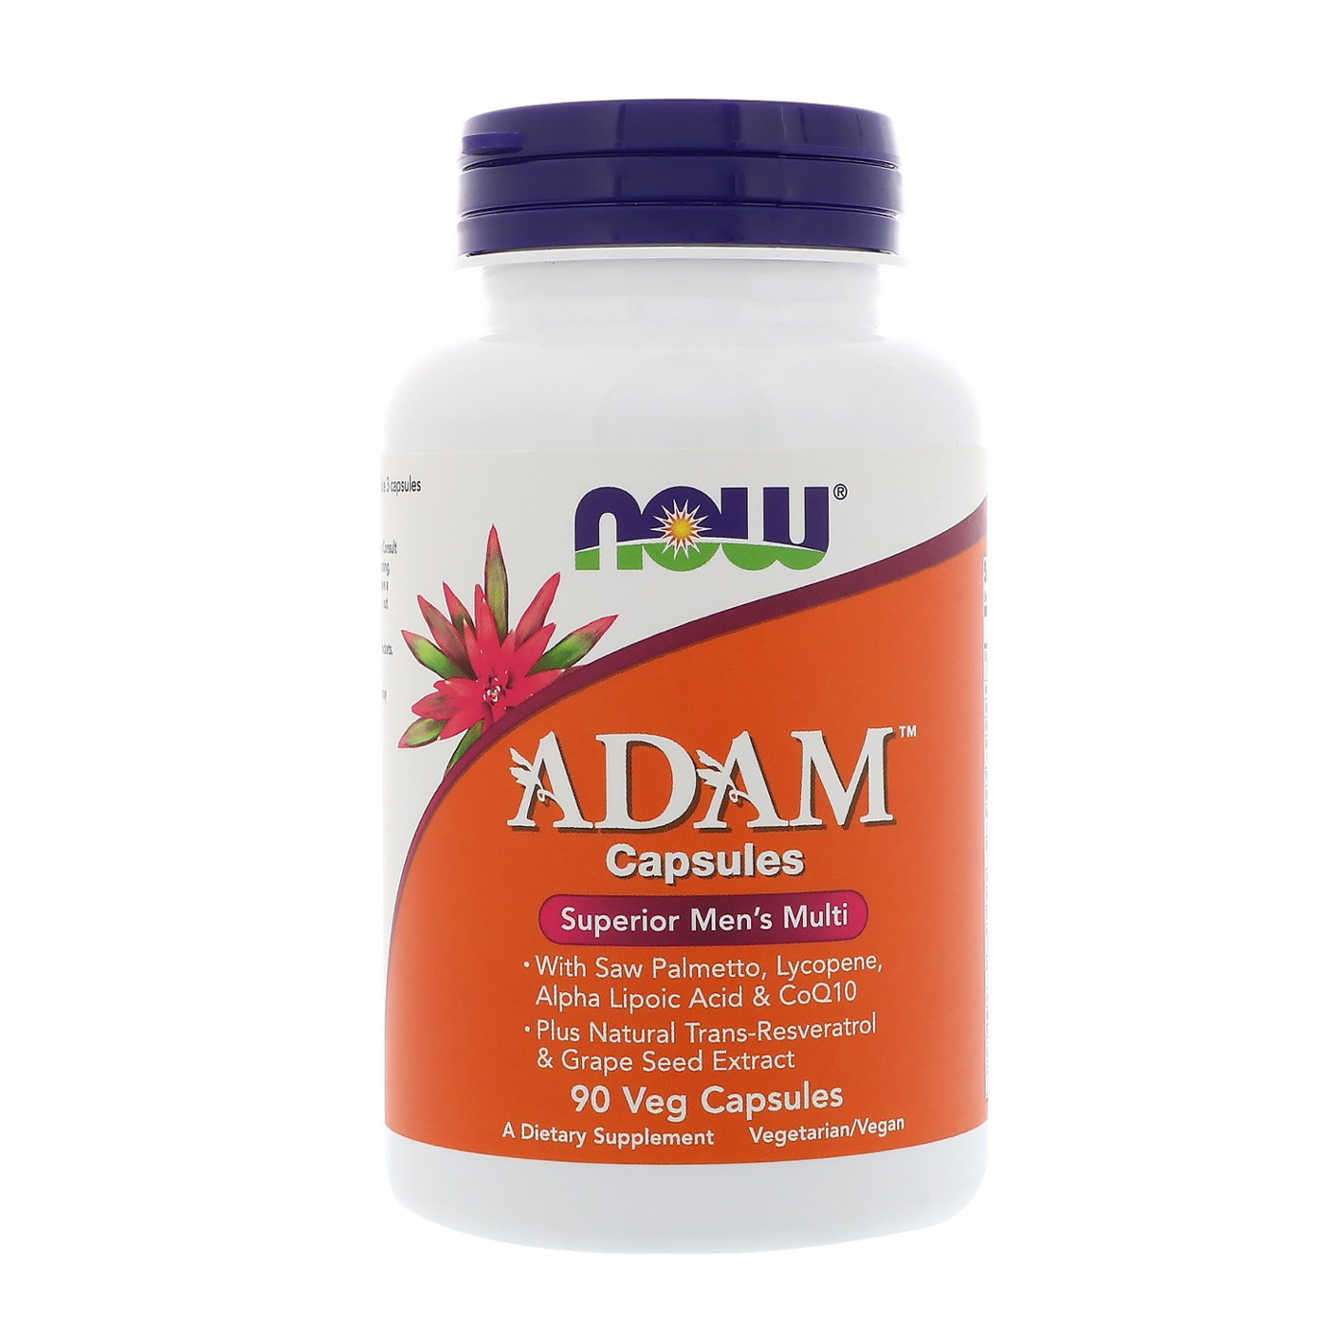 ADAM™ MULTIVITAMINICO SPECIALE UOMO IN CAPSULE VEGETALI - 90 veg caps